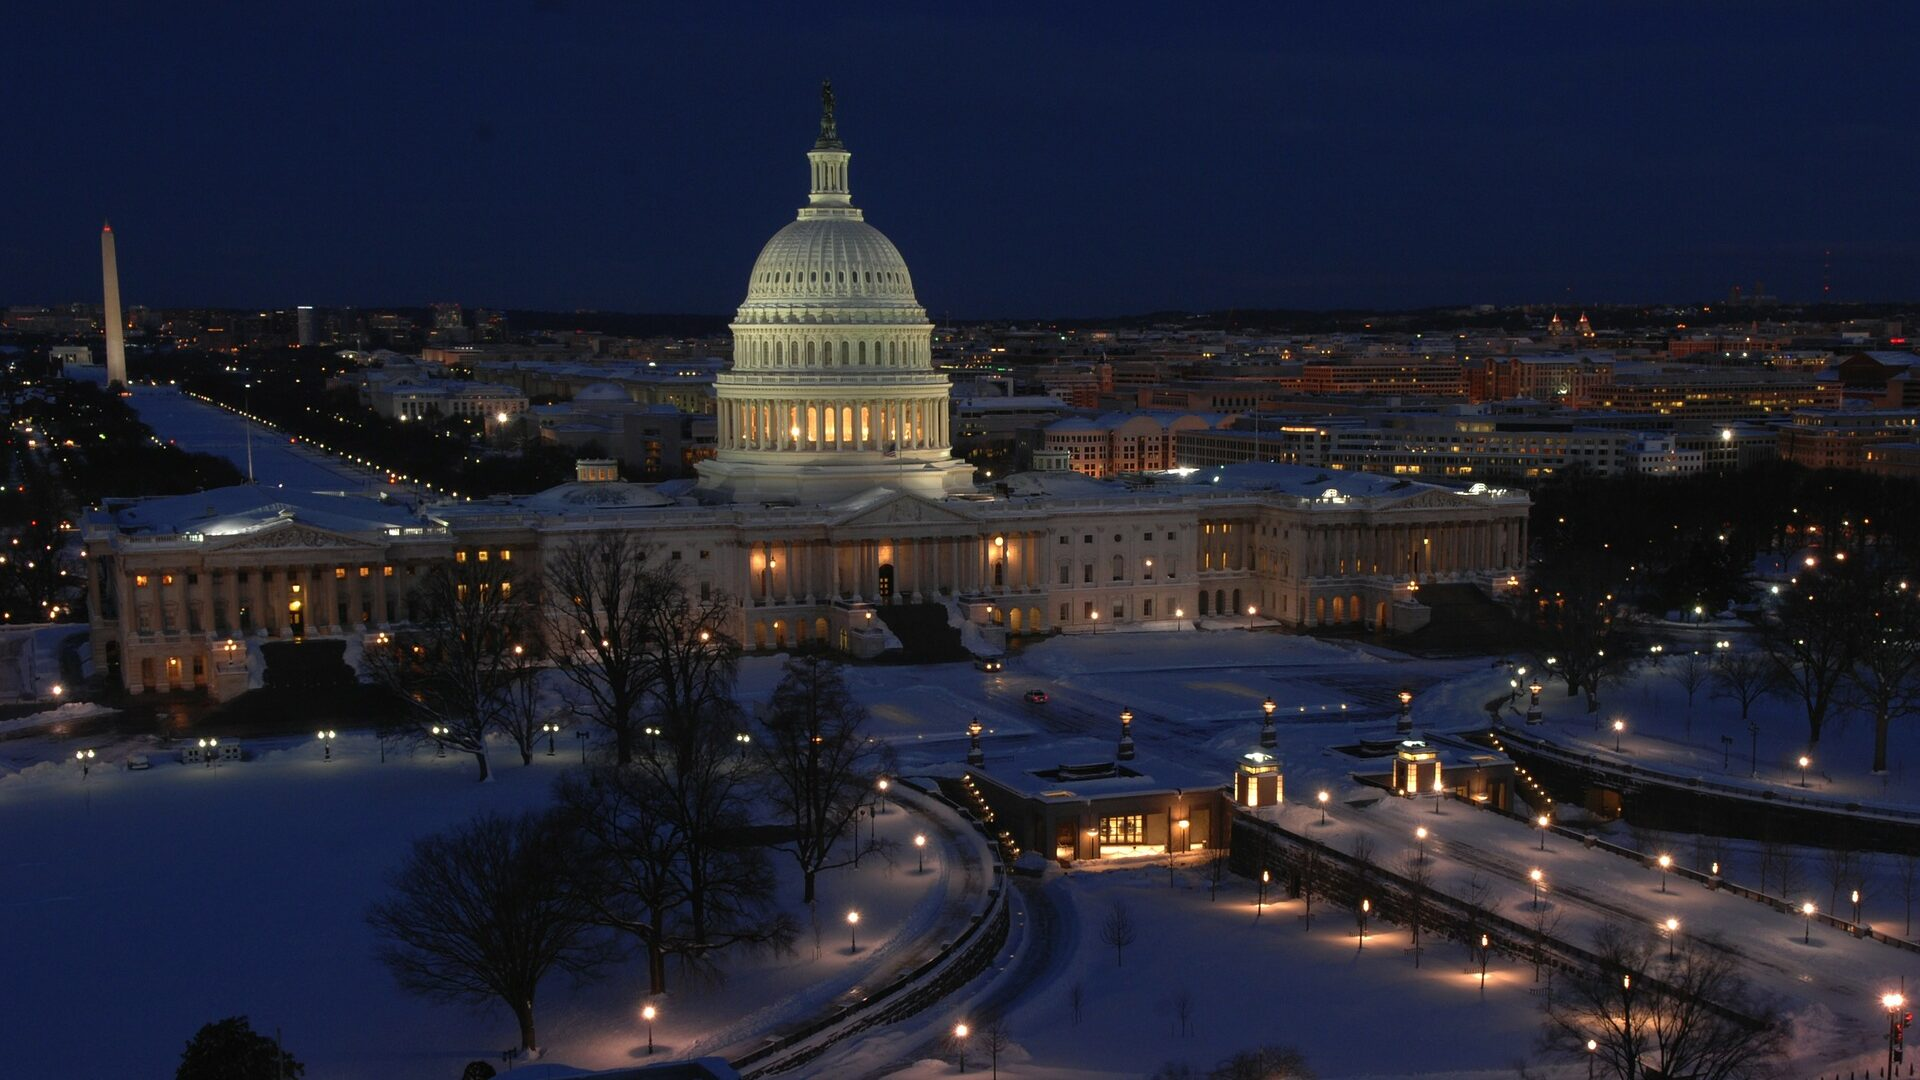 Snowy capital hill